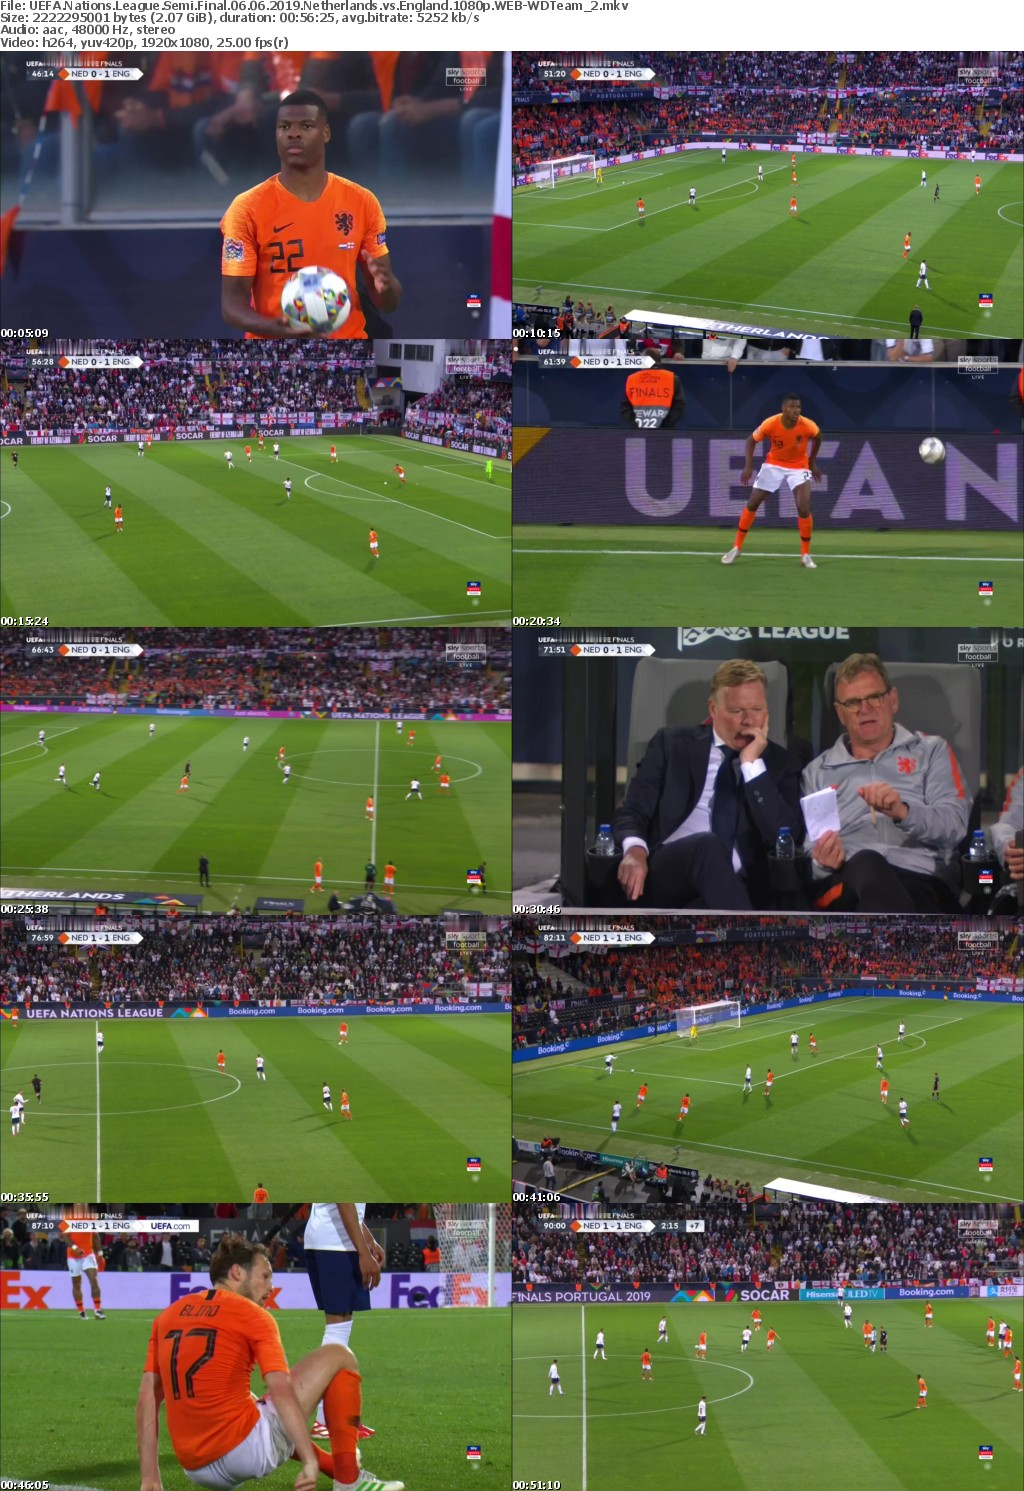 UEFA Nations League Semi Final 06 06 2019 Netherlands vs England 1080p WEB